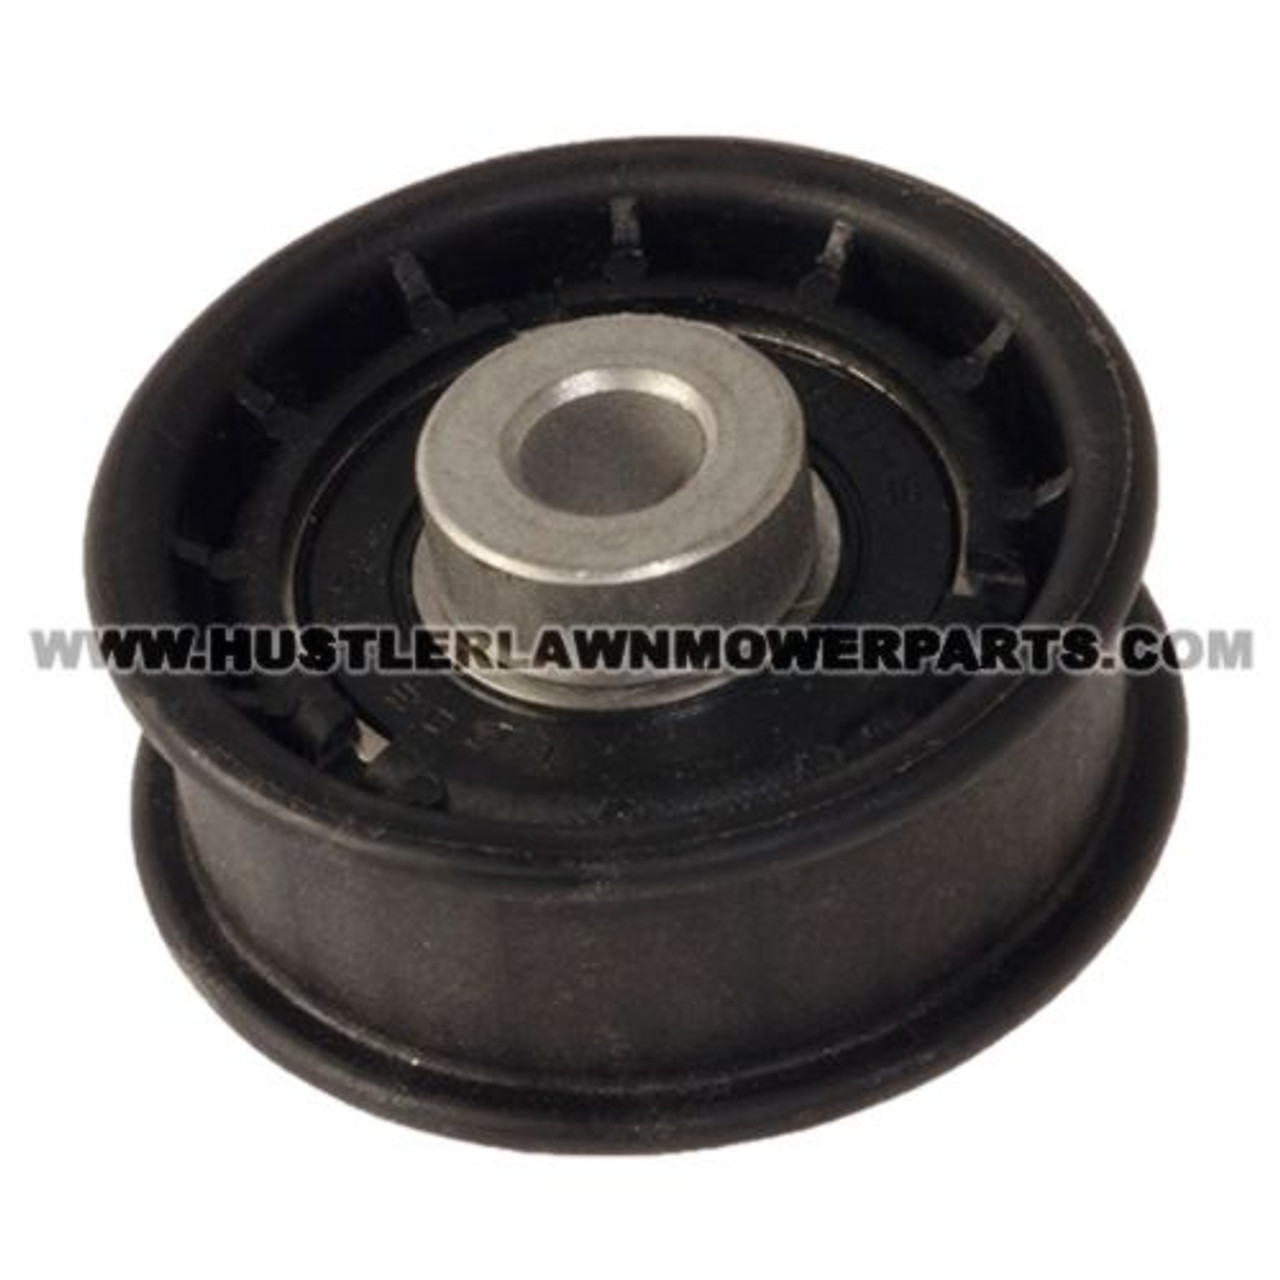 Hustler Mower Parts Wholesale